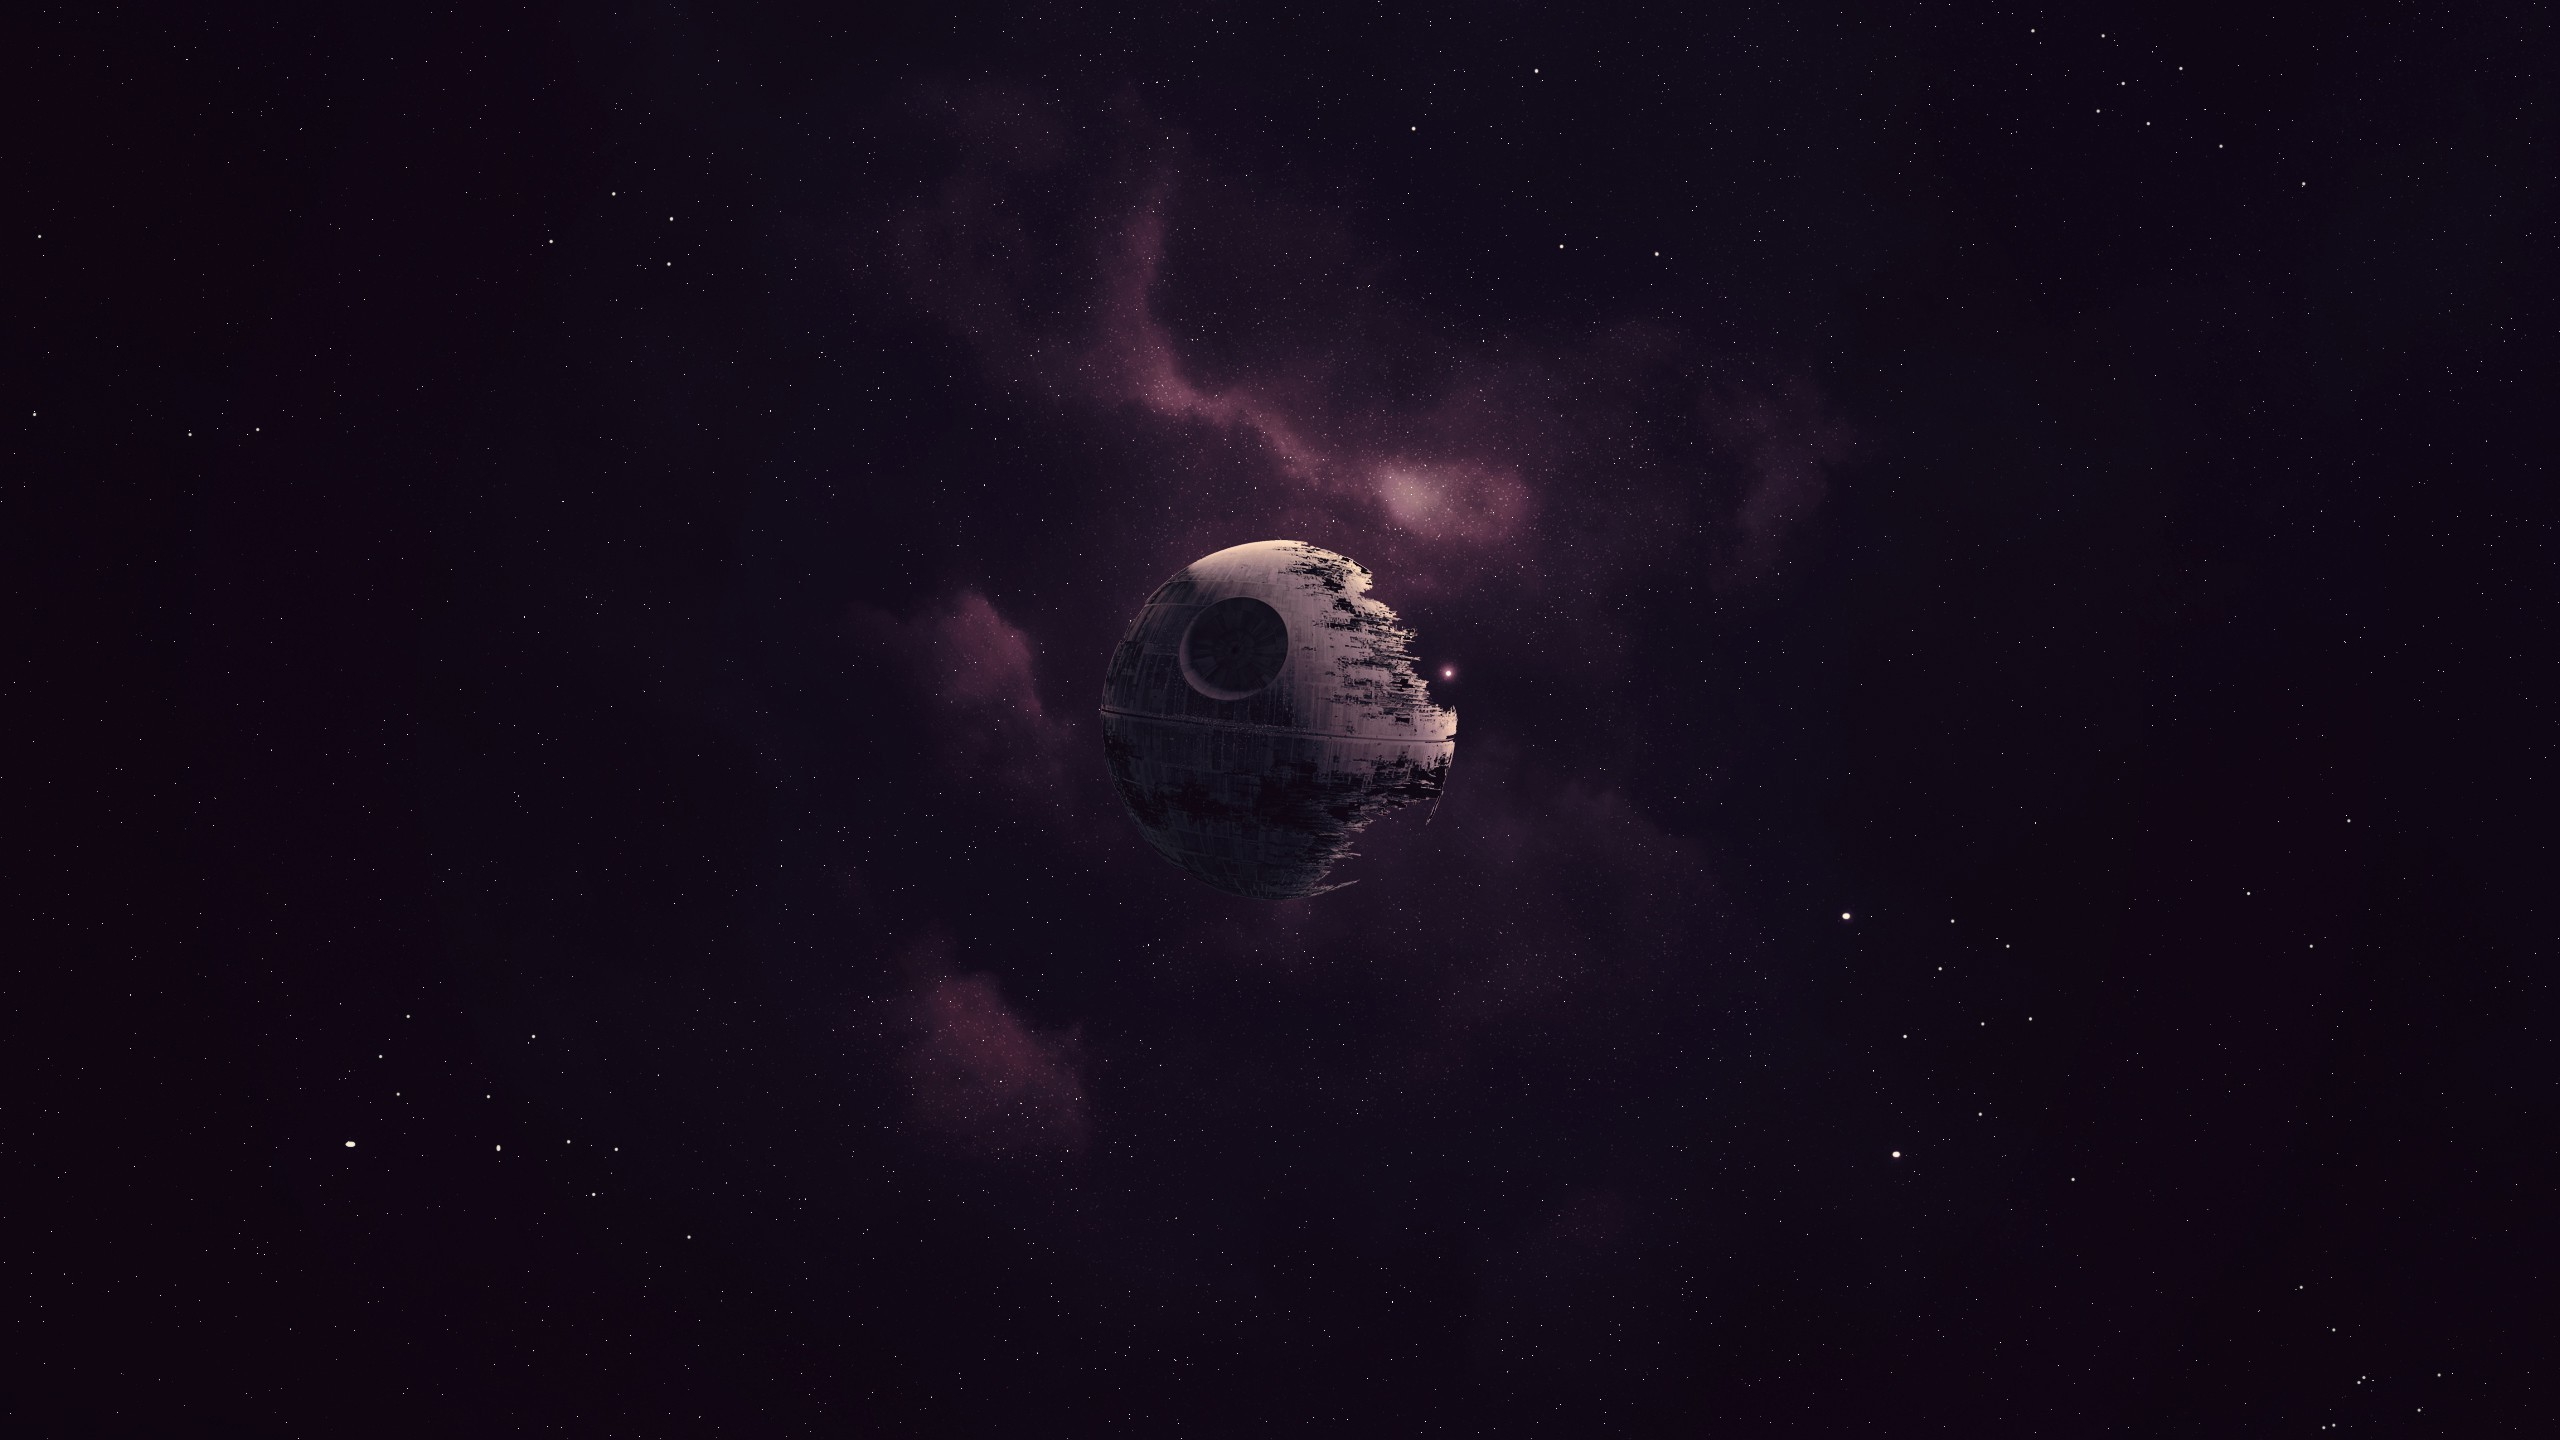 2560x1440 Star Wars, Death Star, Artwork, Space, Purple Wallpapers HD